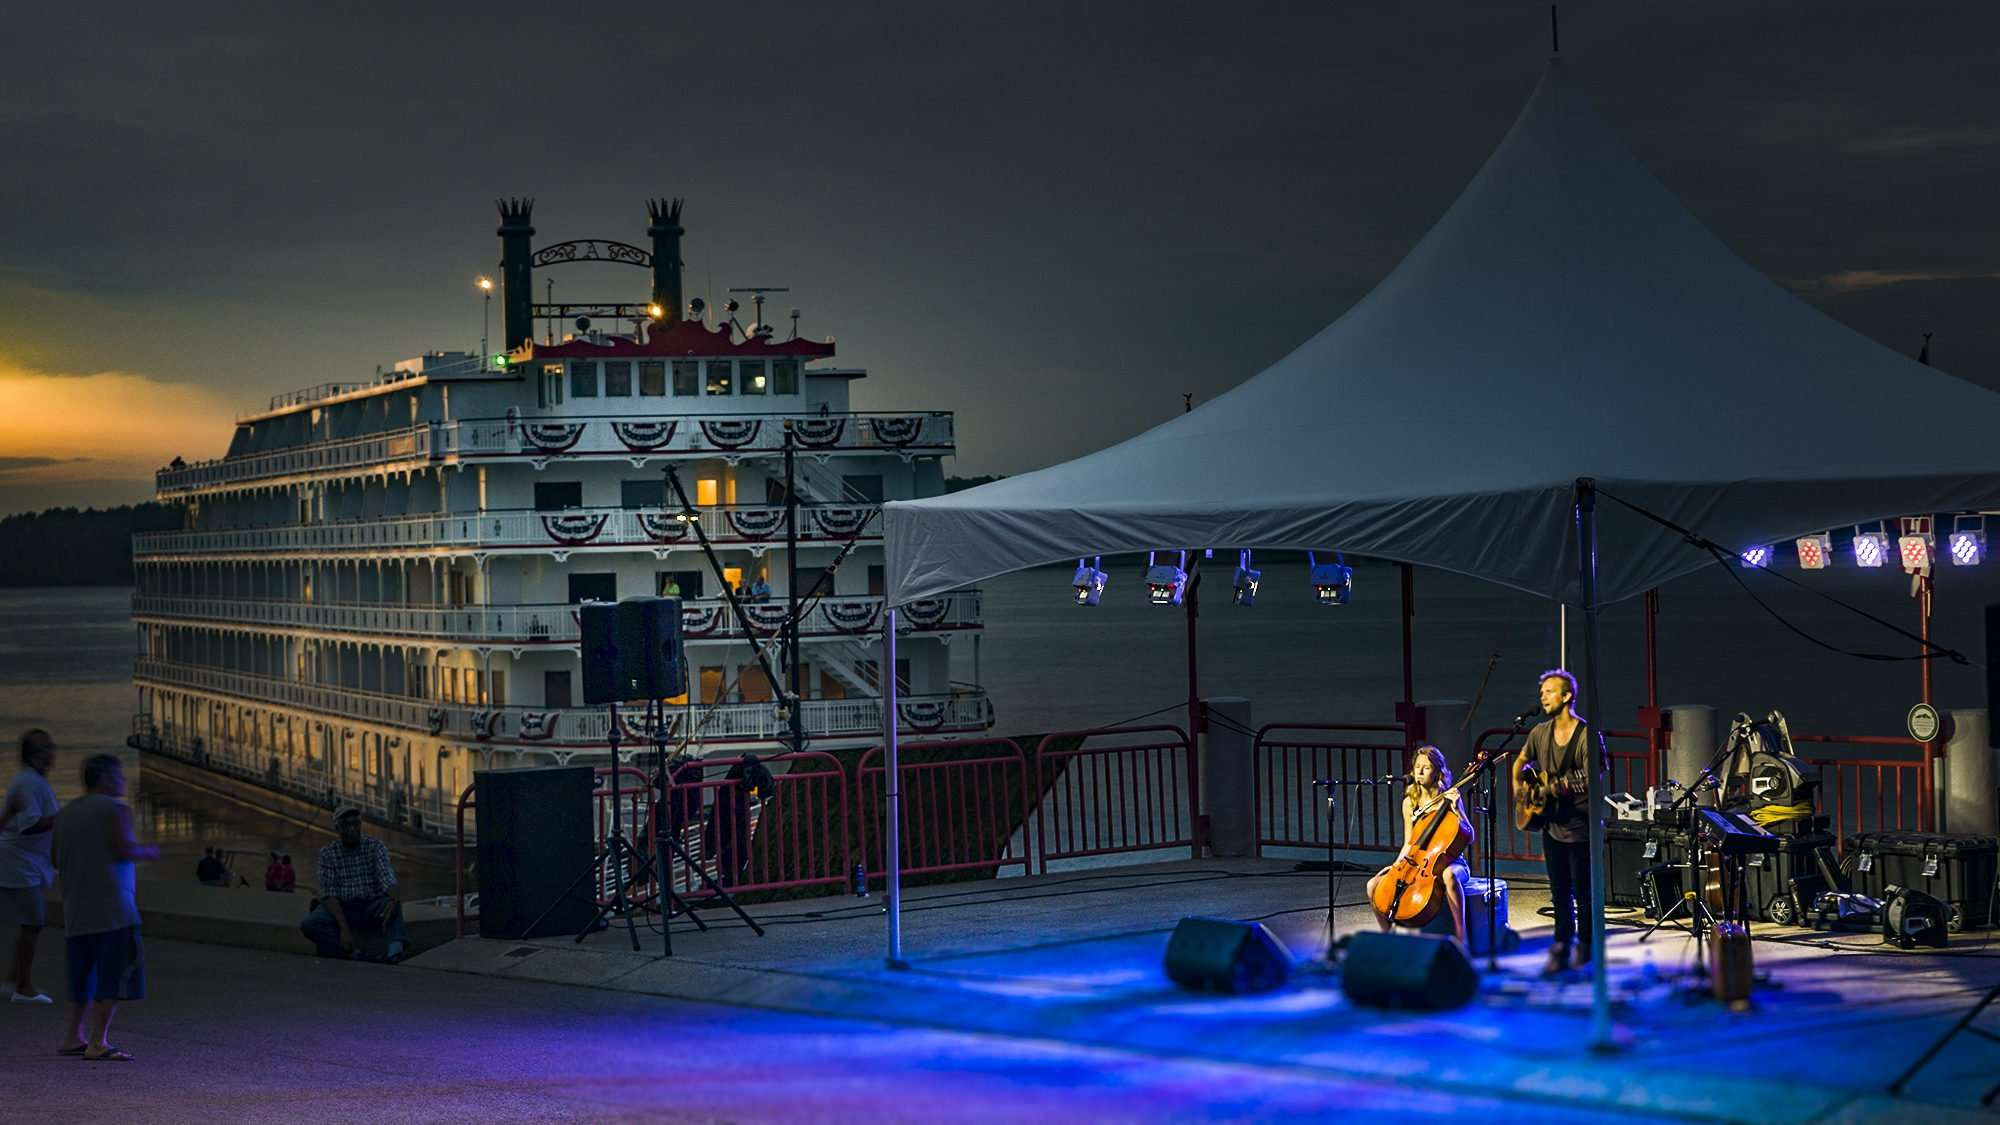 July 27, 2017 - River Concert with Andrew Ripp with America cruise boat in background docked at Port of Paducah, KY/photonews247.com